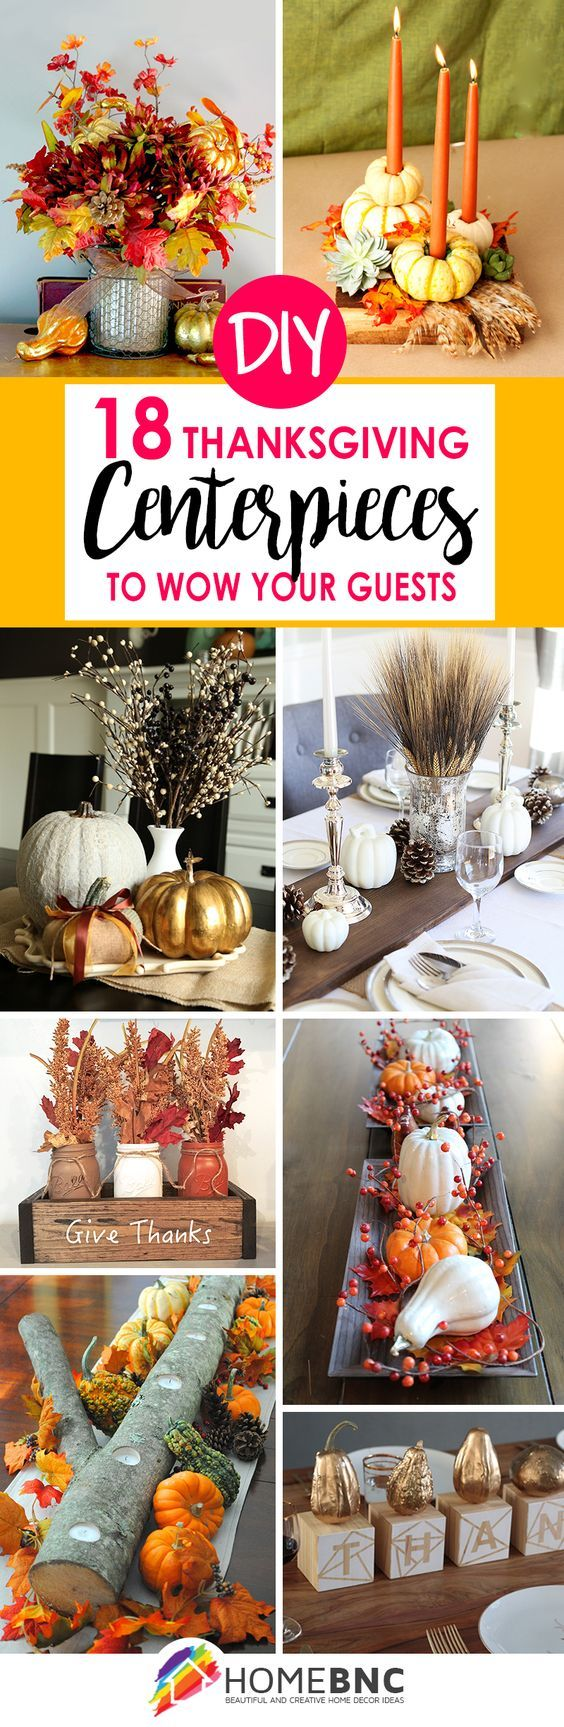 18 Easy DIY Thanksgiving Centerpieces to Wow